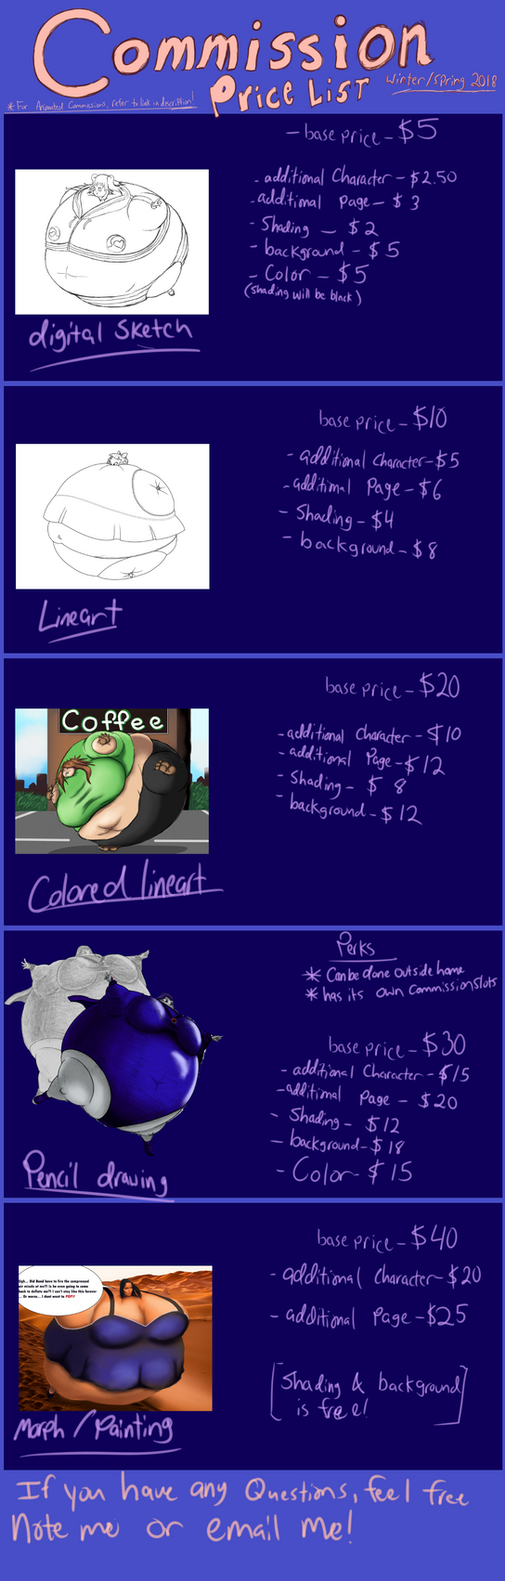 Commission Price List Winter AND Spring 2018 by berry-duke96